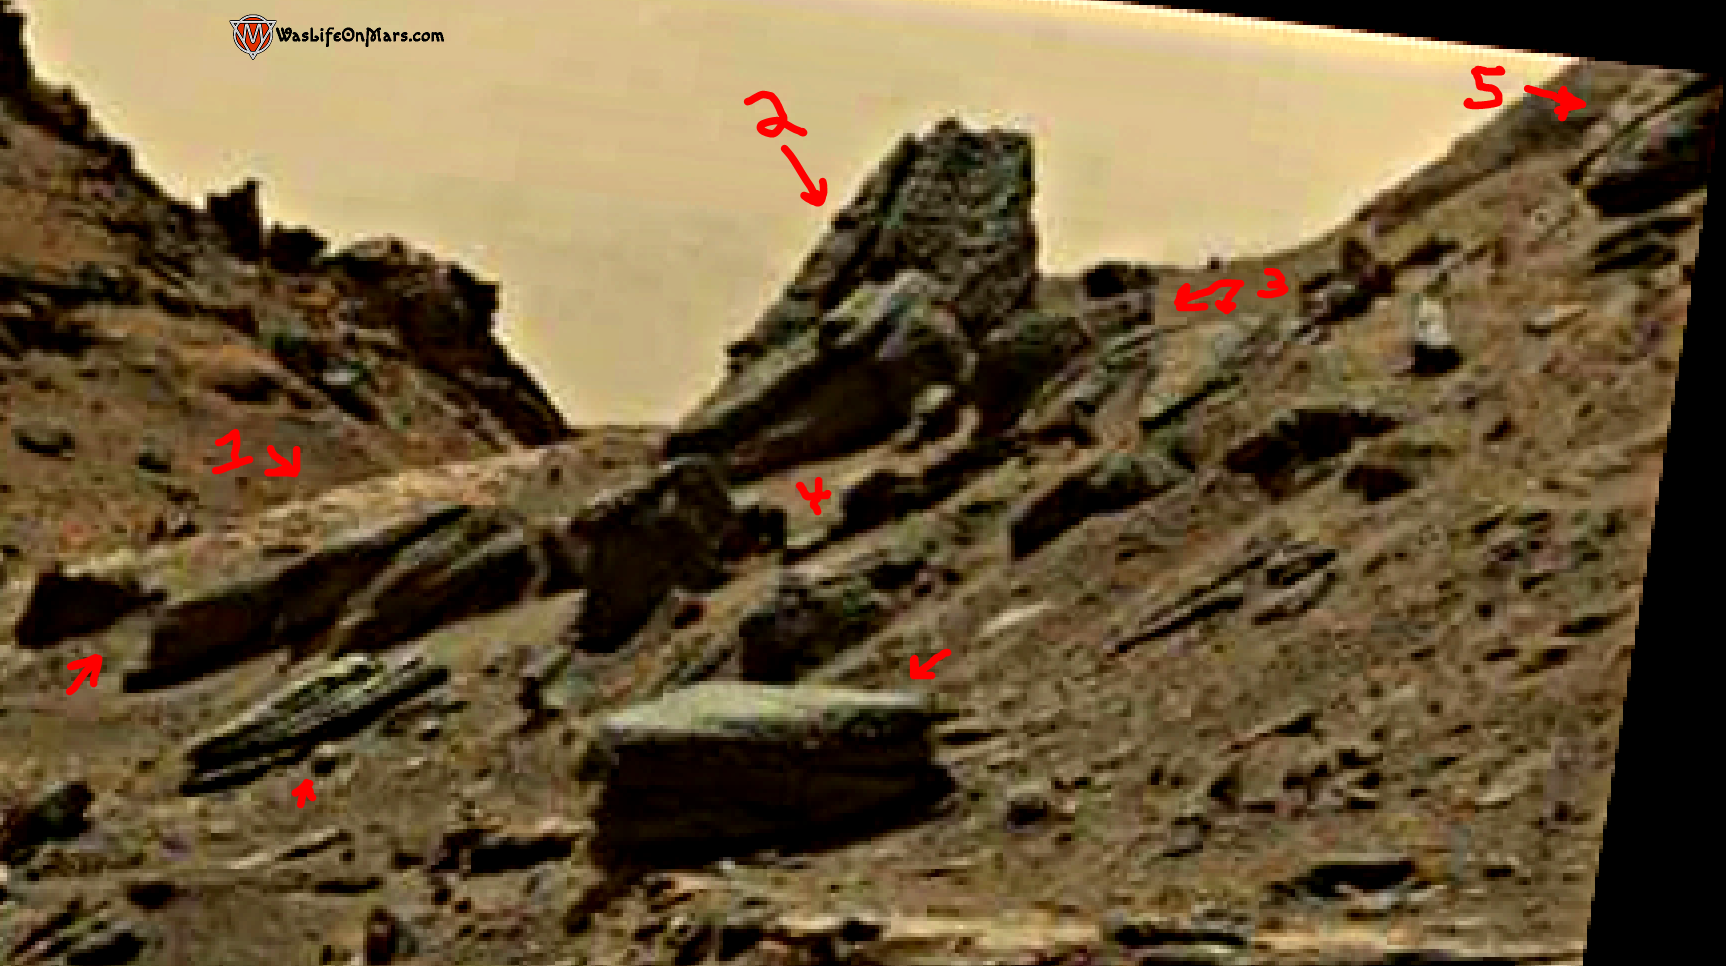 mars sol 1428 anomaly artifacts 4a - aircraft - was life on mars